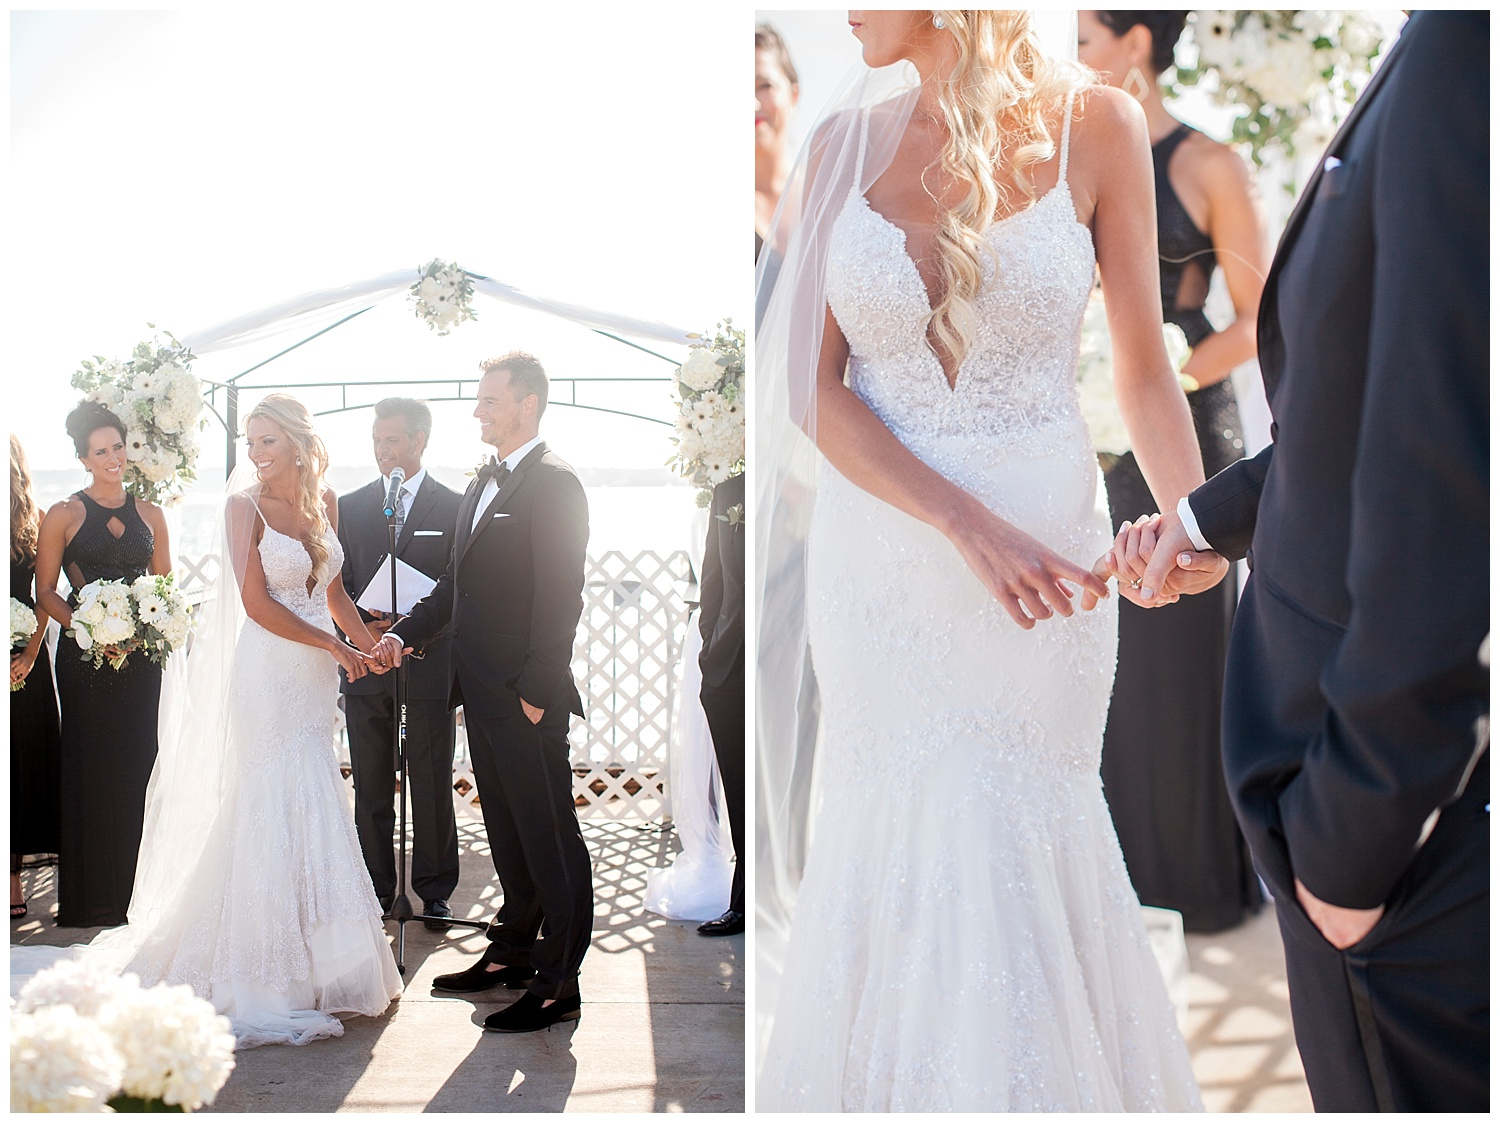 SANDIEGOWEDDING_PHOTOGRAPHER_CALIFORNIA_NICOLEQUIROZ_21.jpg